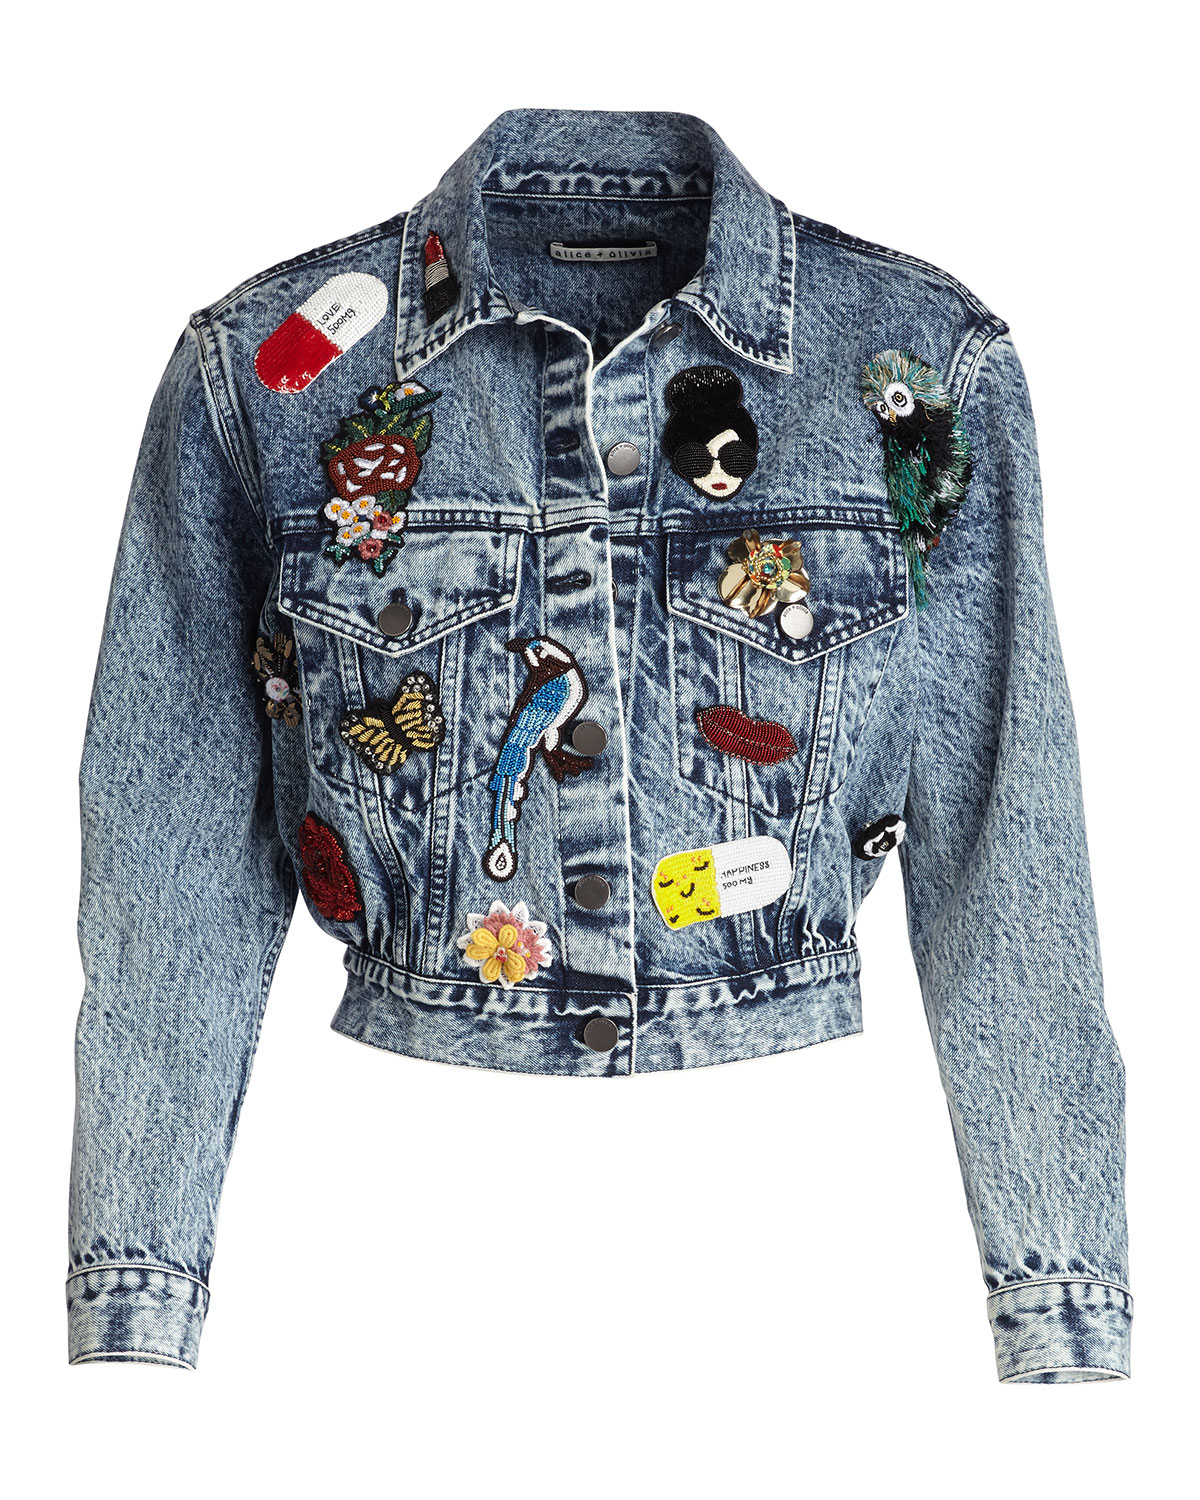 Alice+olivia Woman Embellished Denim Jacket Light Denim Size M Alice & Olivia Clearance Manchester Great Sale Outlet 2018 New Clearance Wholesale Price Limited New eVM4FzLKRE